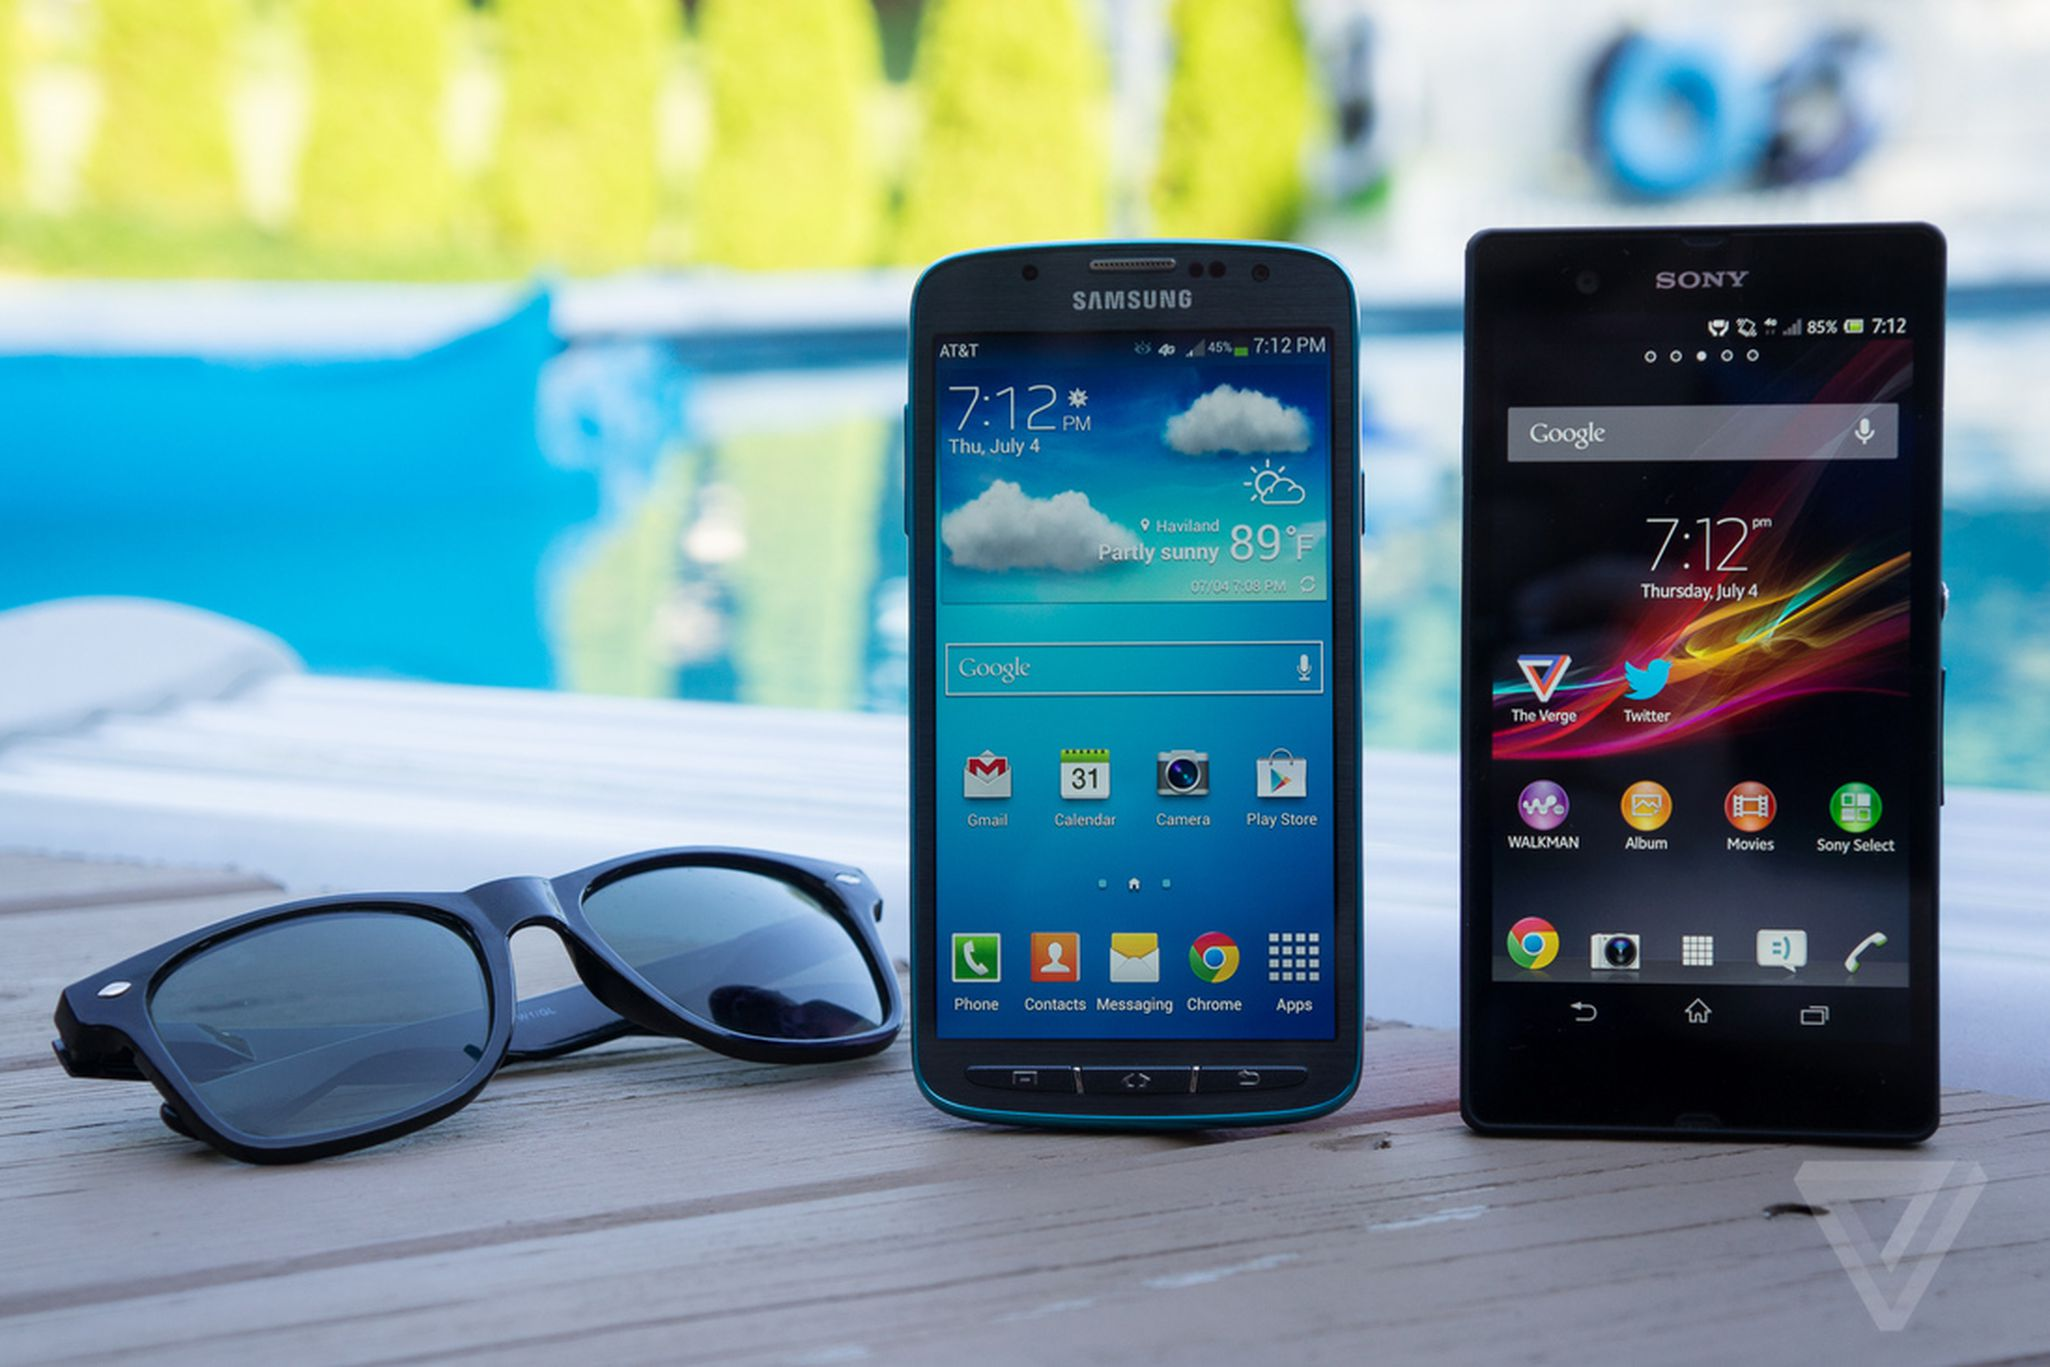 official photos 9a6b0 83c2a Battle of the waterproof phones: Samsung Galaxy S4 Active vs. Sony ...